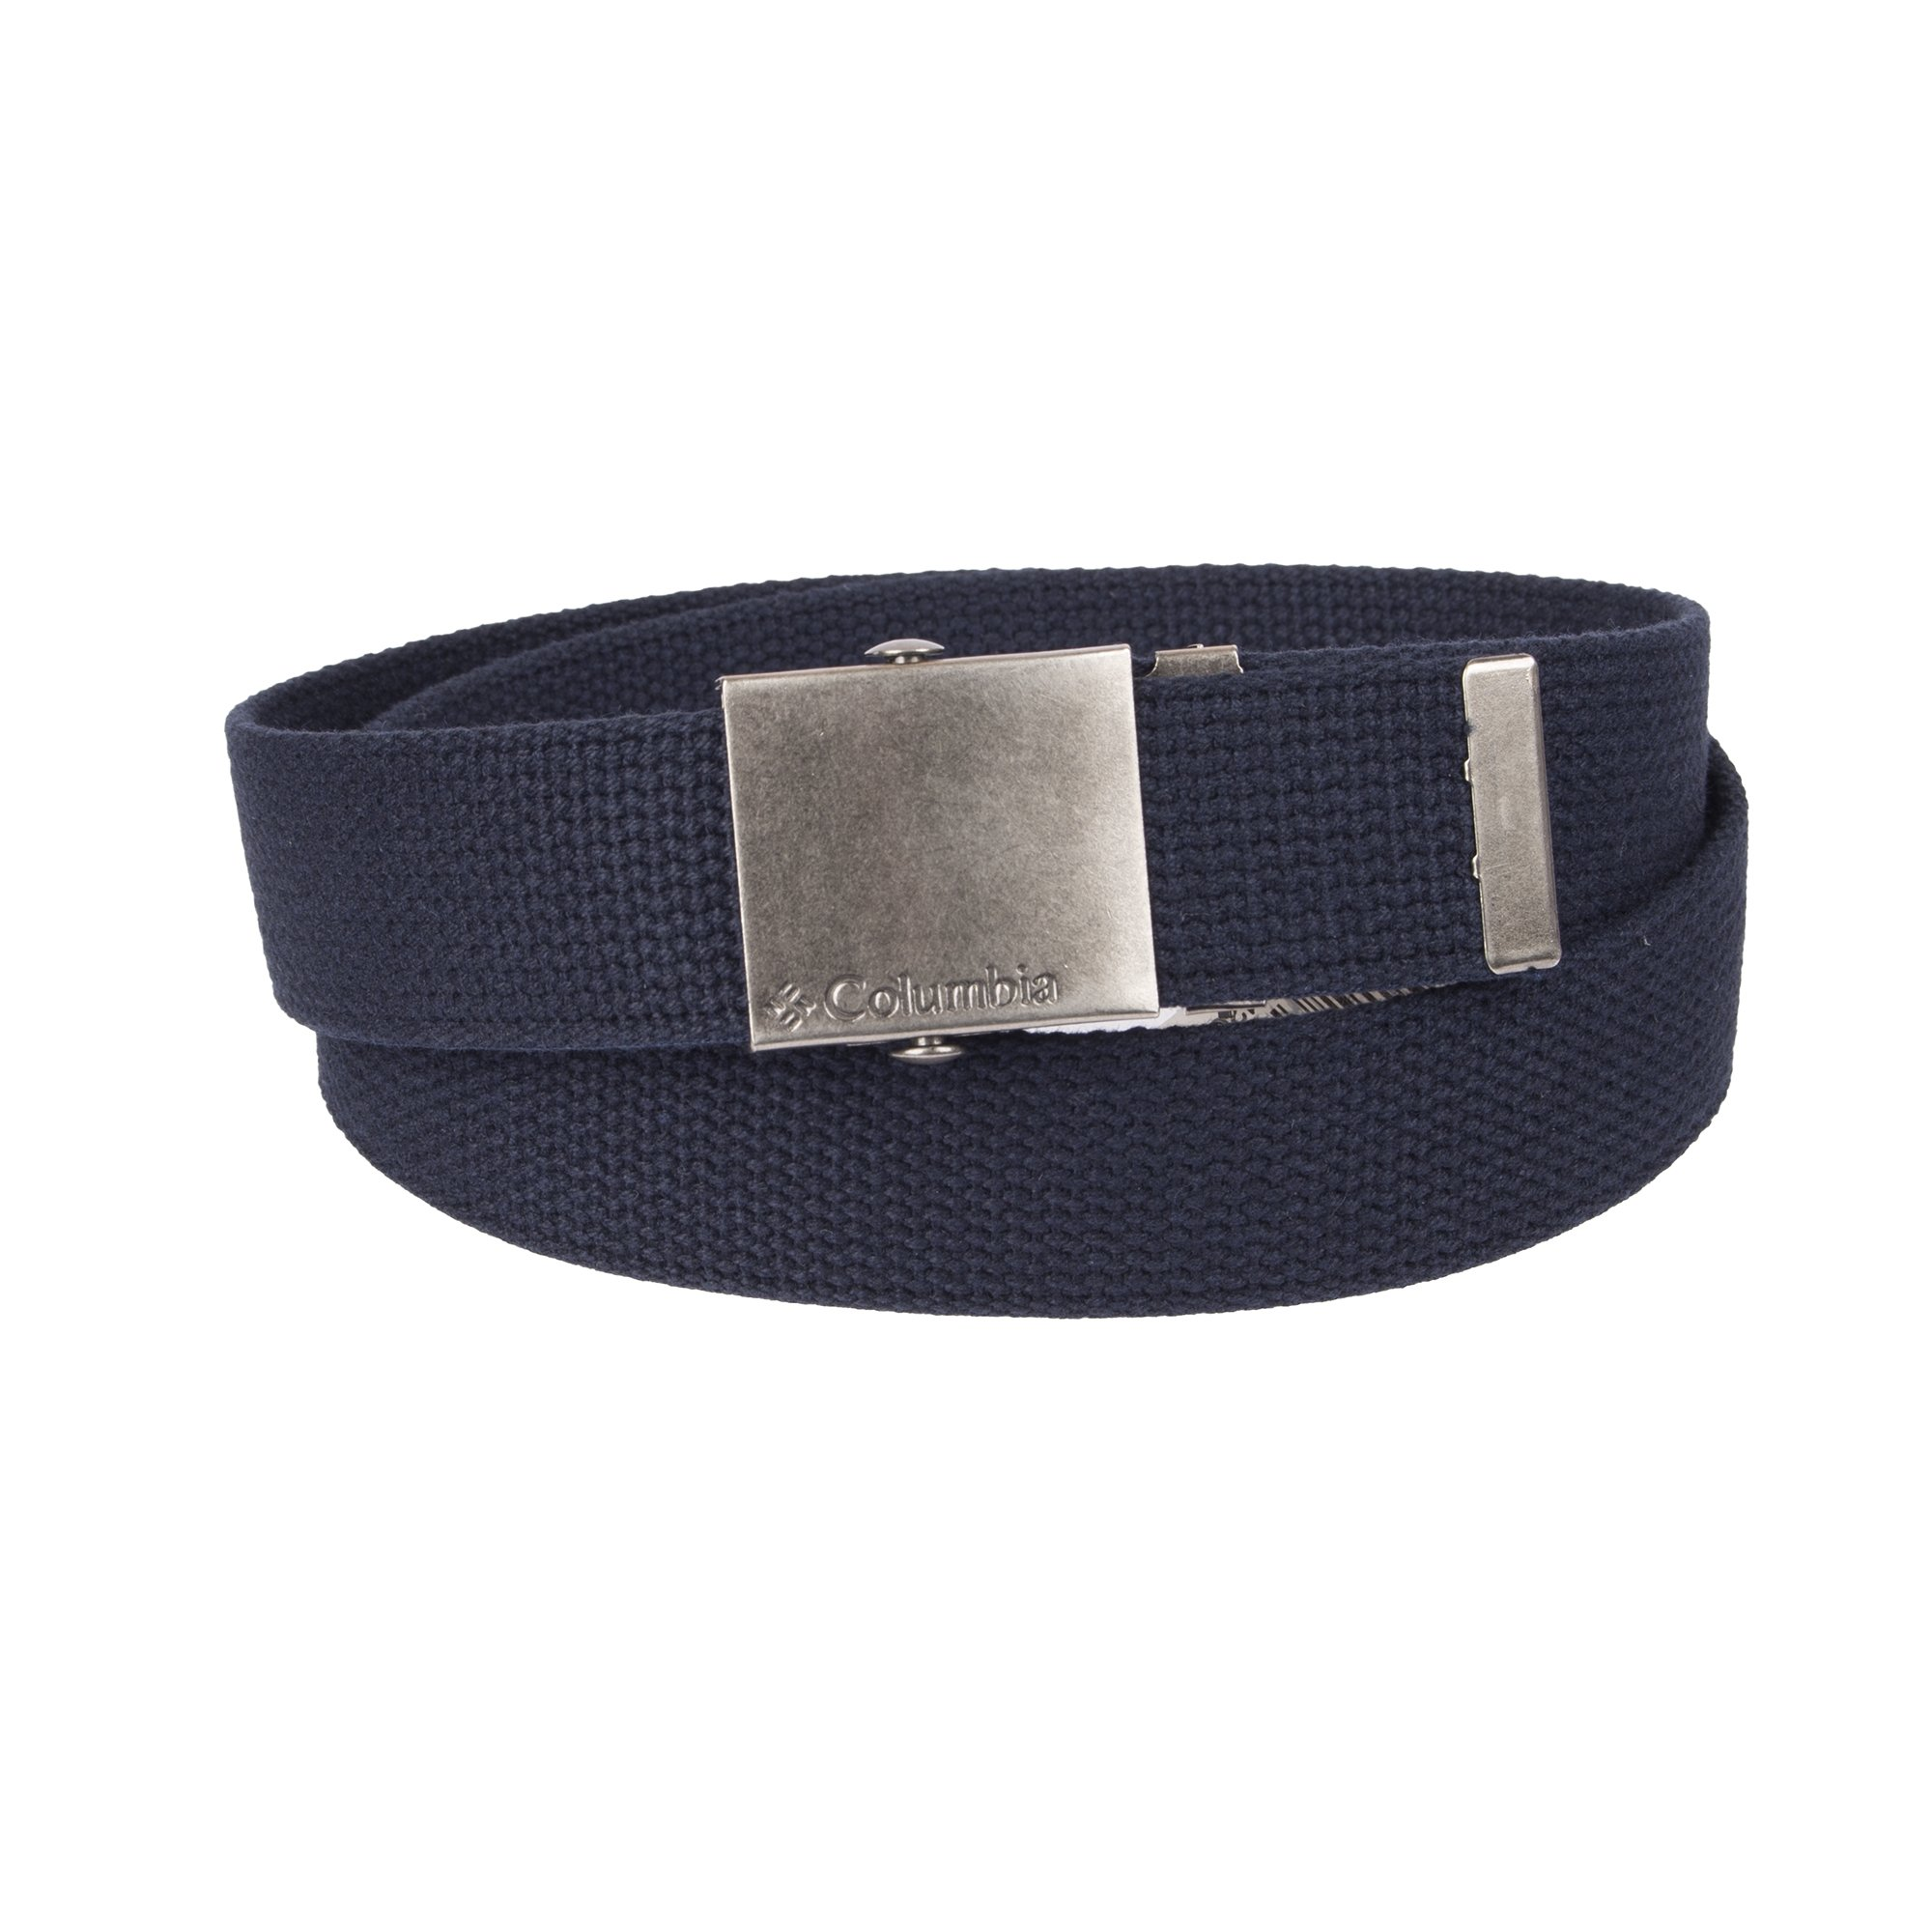 Columbia Men's Military Web Belt - Casual for Jeans Adjustable One Size Cotton Strap and Metal Plaque Buckle,Navy,One Size